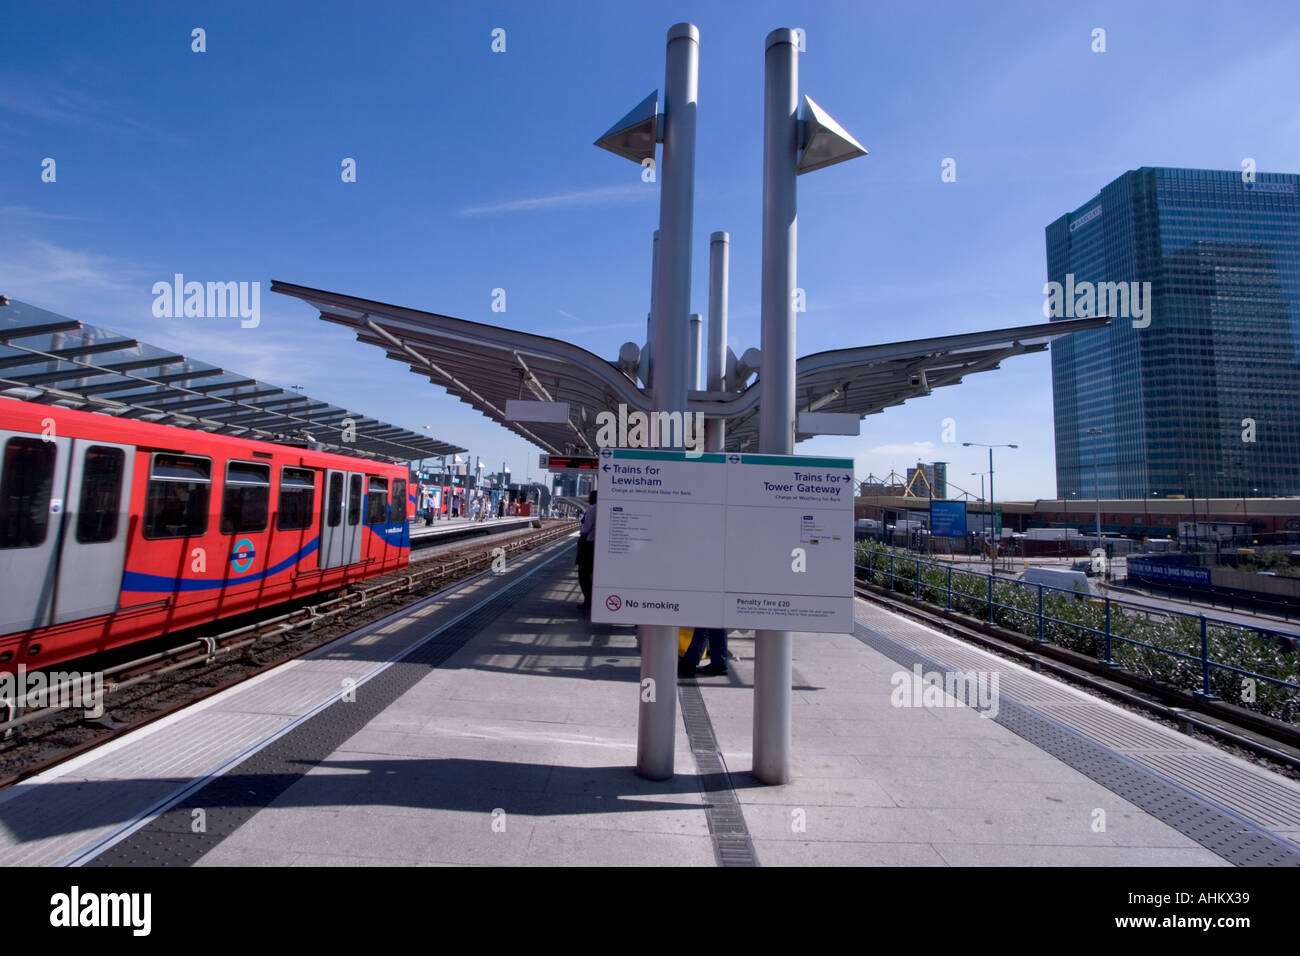 View of DLR Docklands light railway station with train Poplar Station - Stock Image